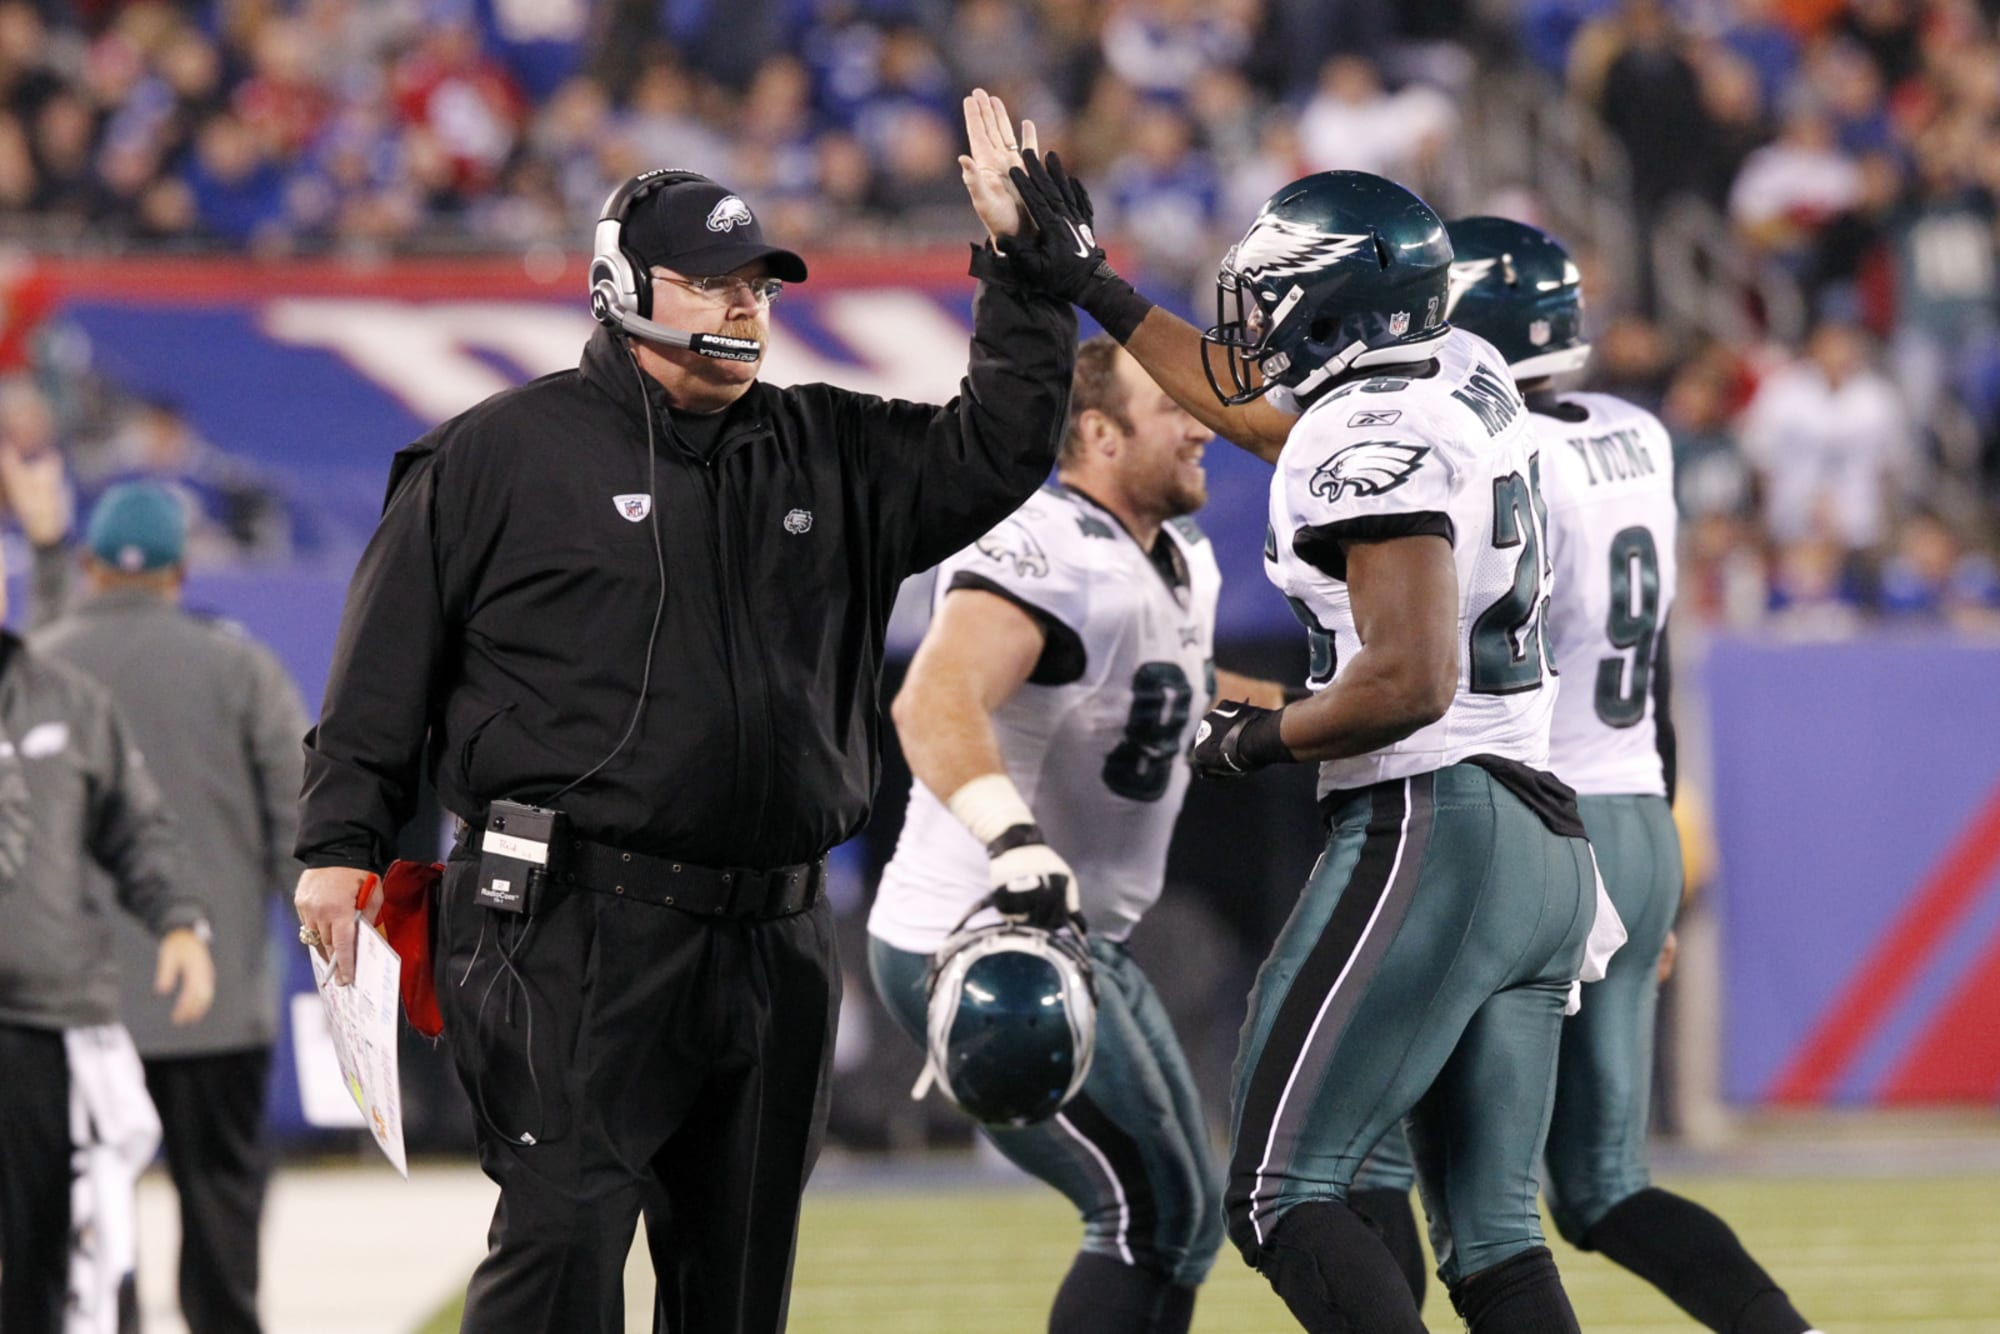 Philadelphia Eagles: Here's where Kelly and Reid edge Pederson